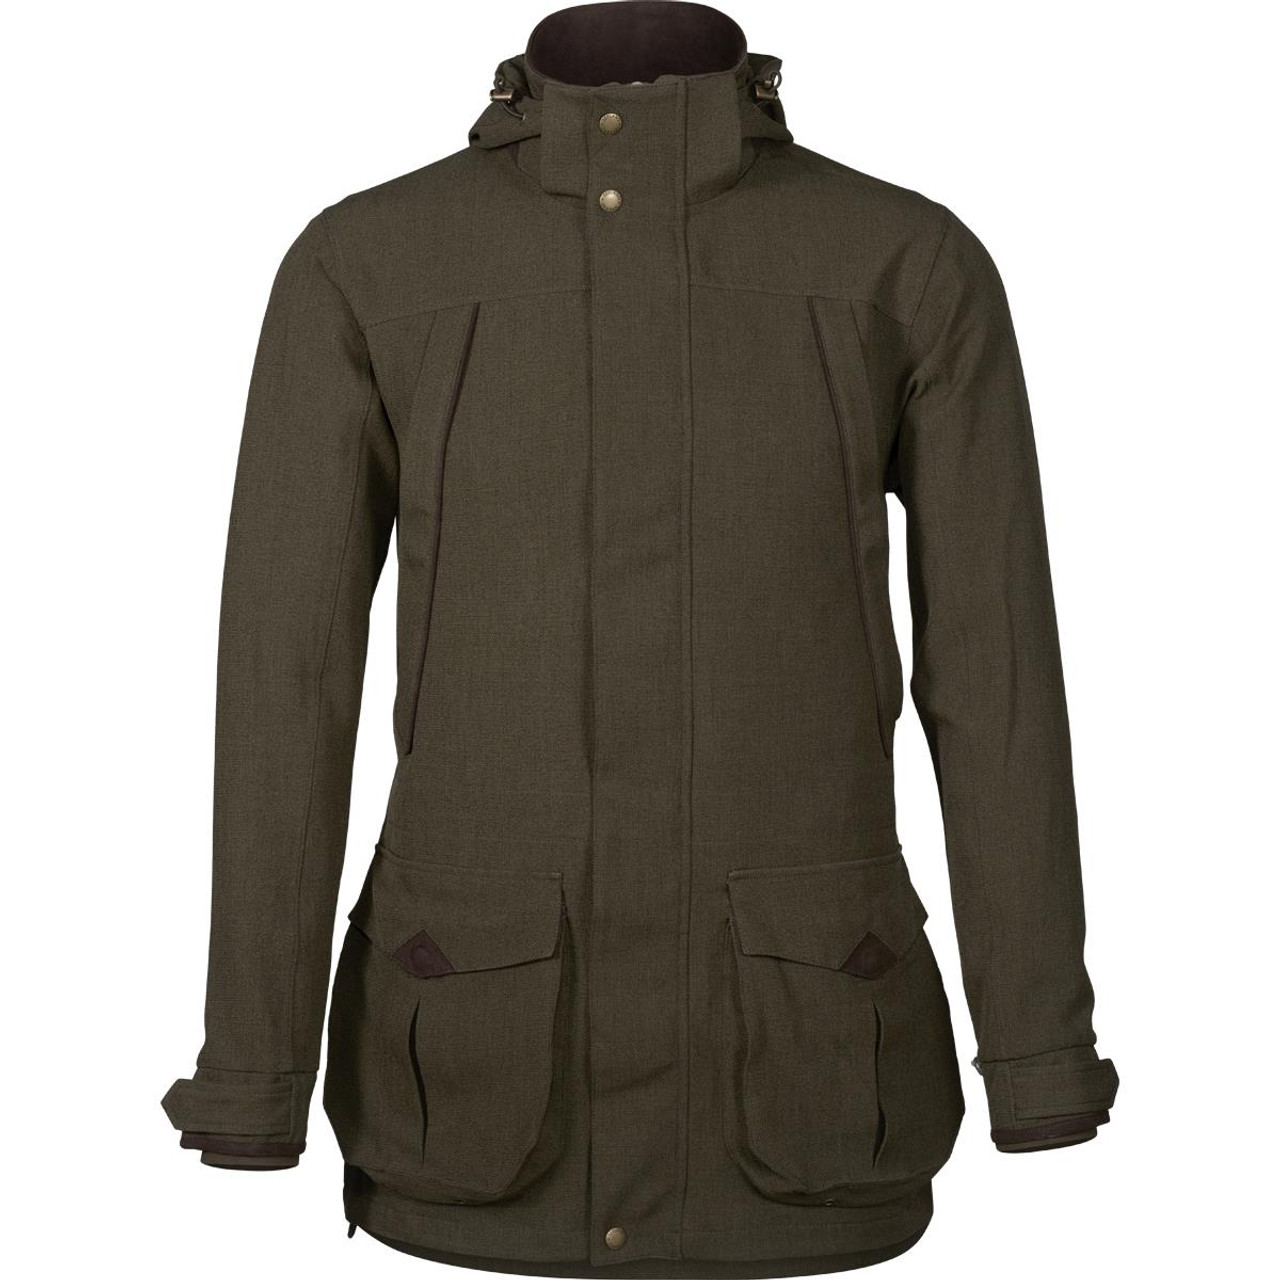 Shaded Olive Seeland Woodcock Advanced Jacket